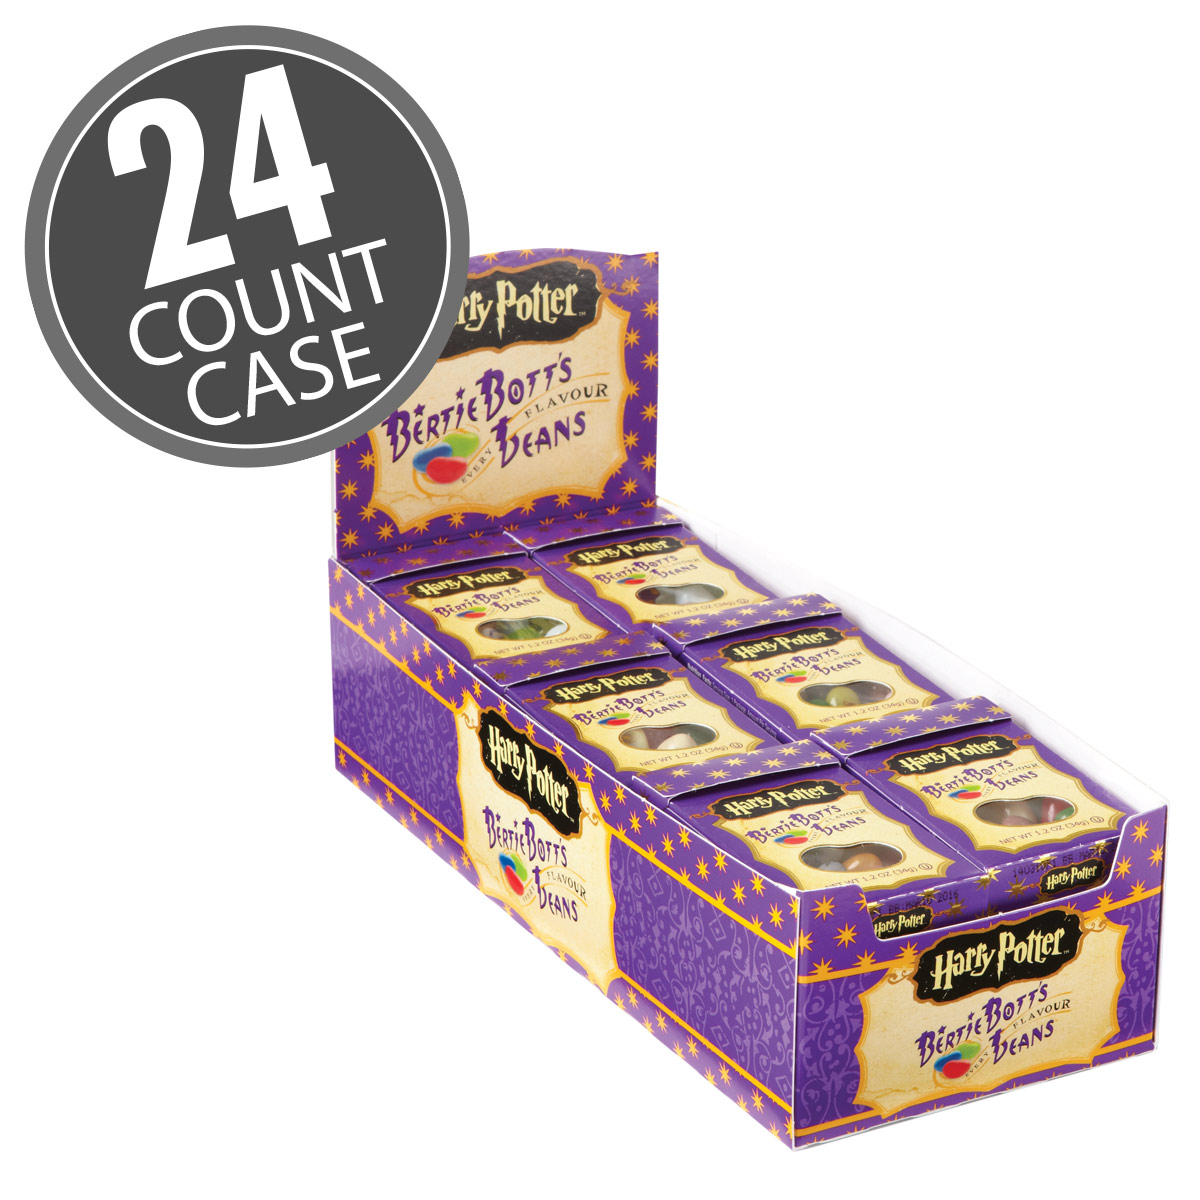 Harry Potter™ Bertie Botts Every Flavour Beans - 1.2 oz boxes - 24 Count Case